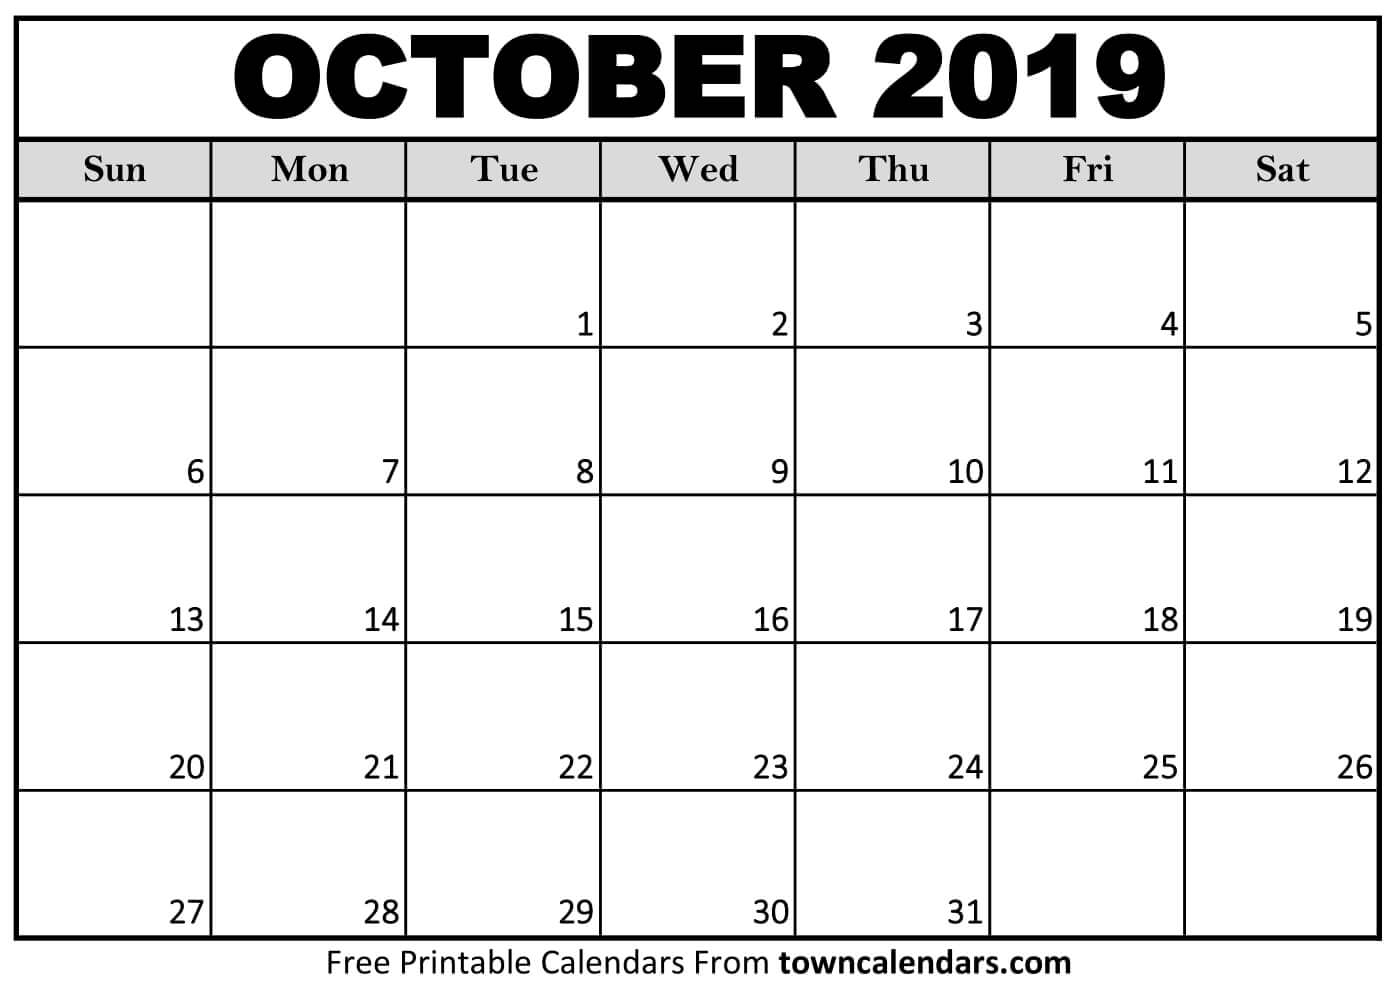 Printable October 2019 Calendar - Towncalendars regarding Catholic Calander For October 2019